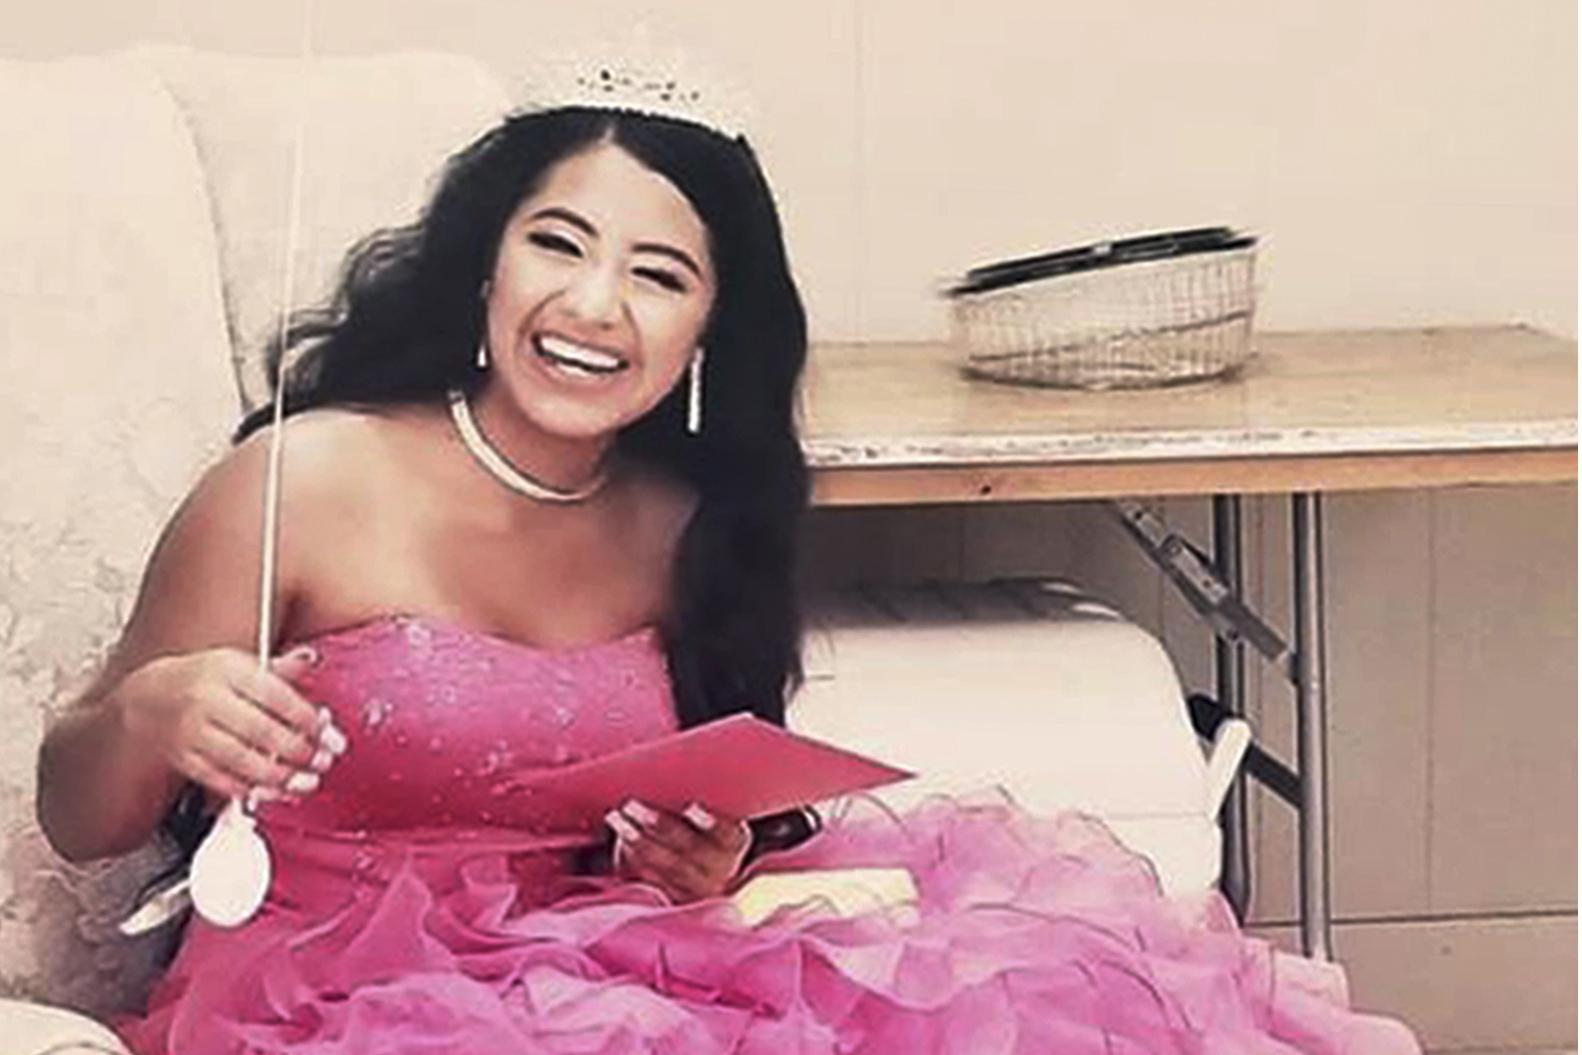 Miami women surprise homeless teen with magical quinceanera